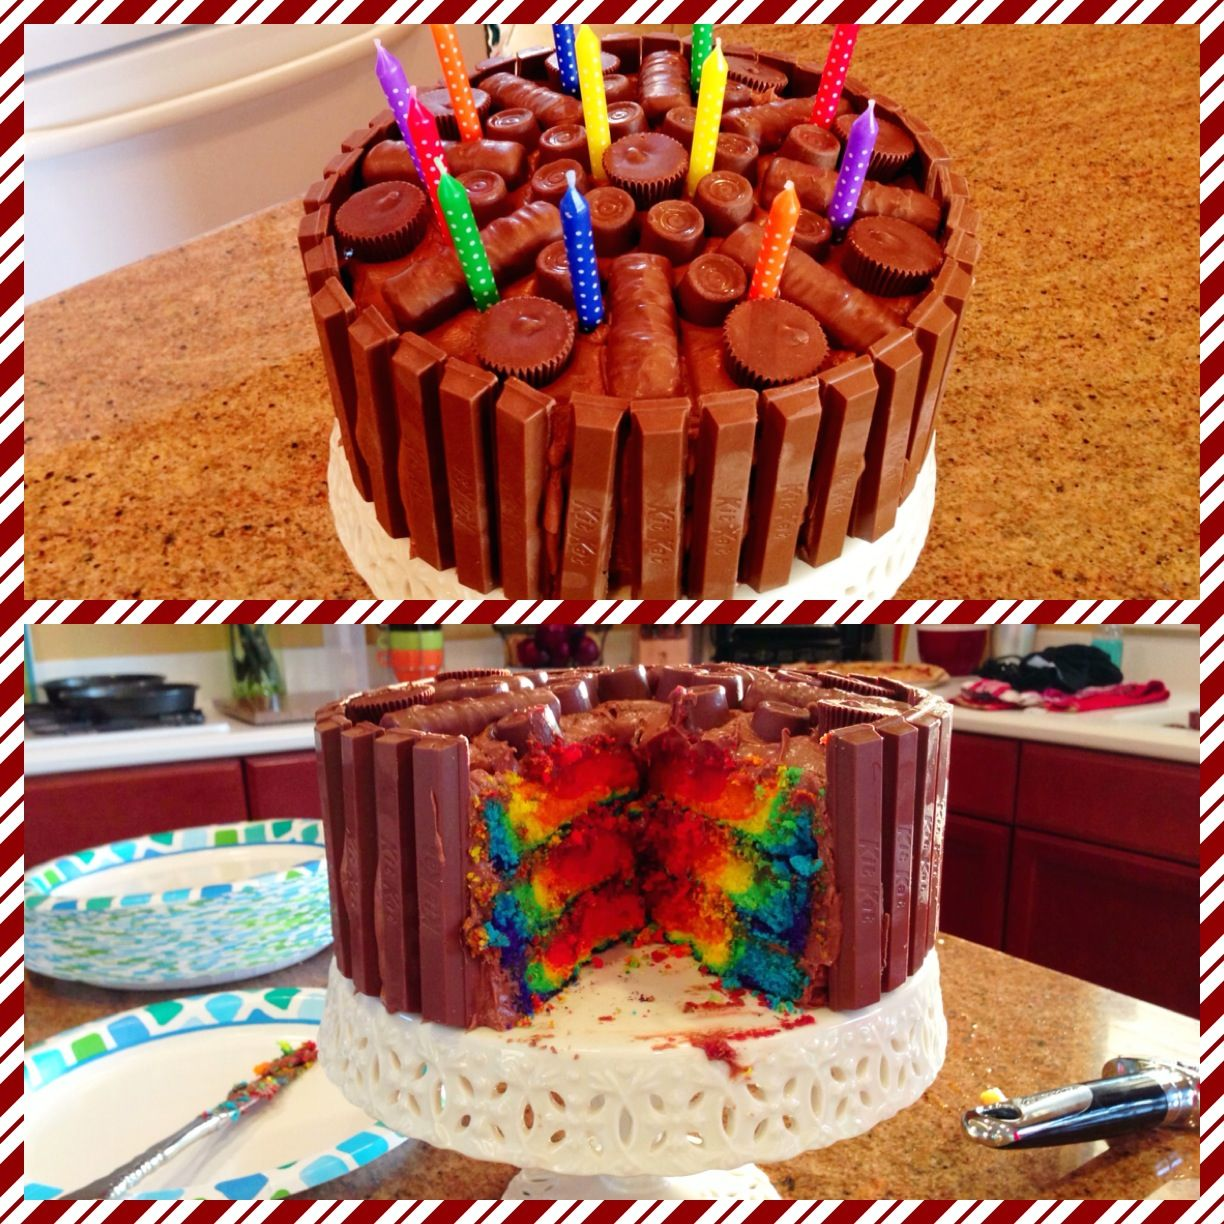 Pin By Karen Robison On Baking Boy Birthday Parties 12 Year Old Birthday Party Ideas Cake